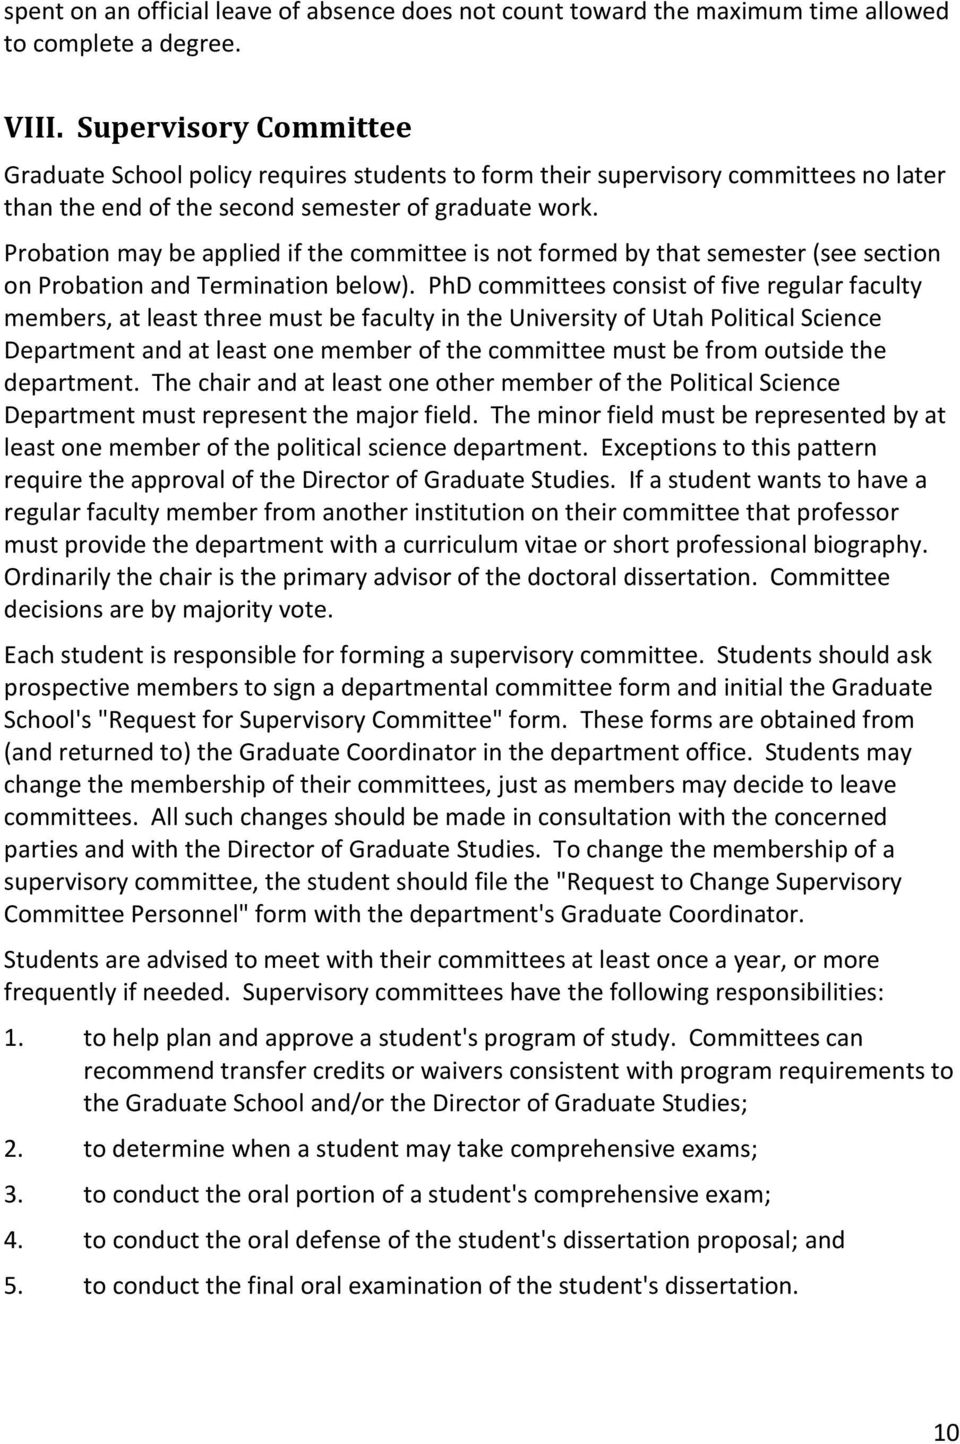 Probation may be applied if the committee is not formed by that semester (see section on Probation and Termination below).